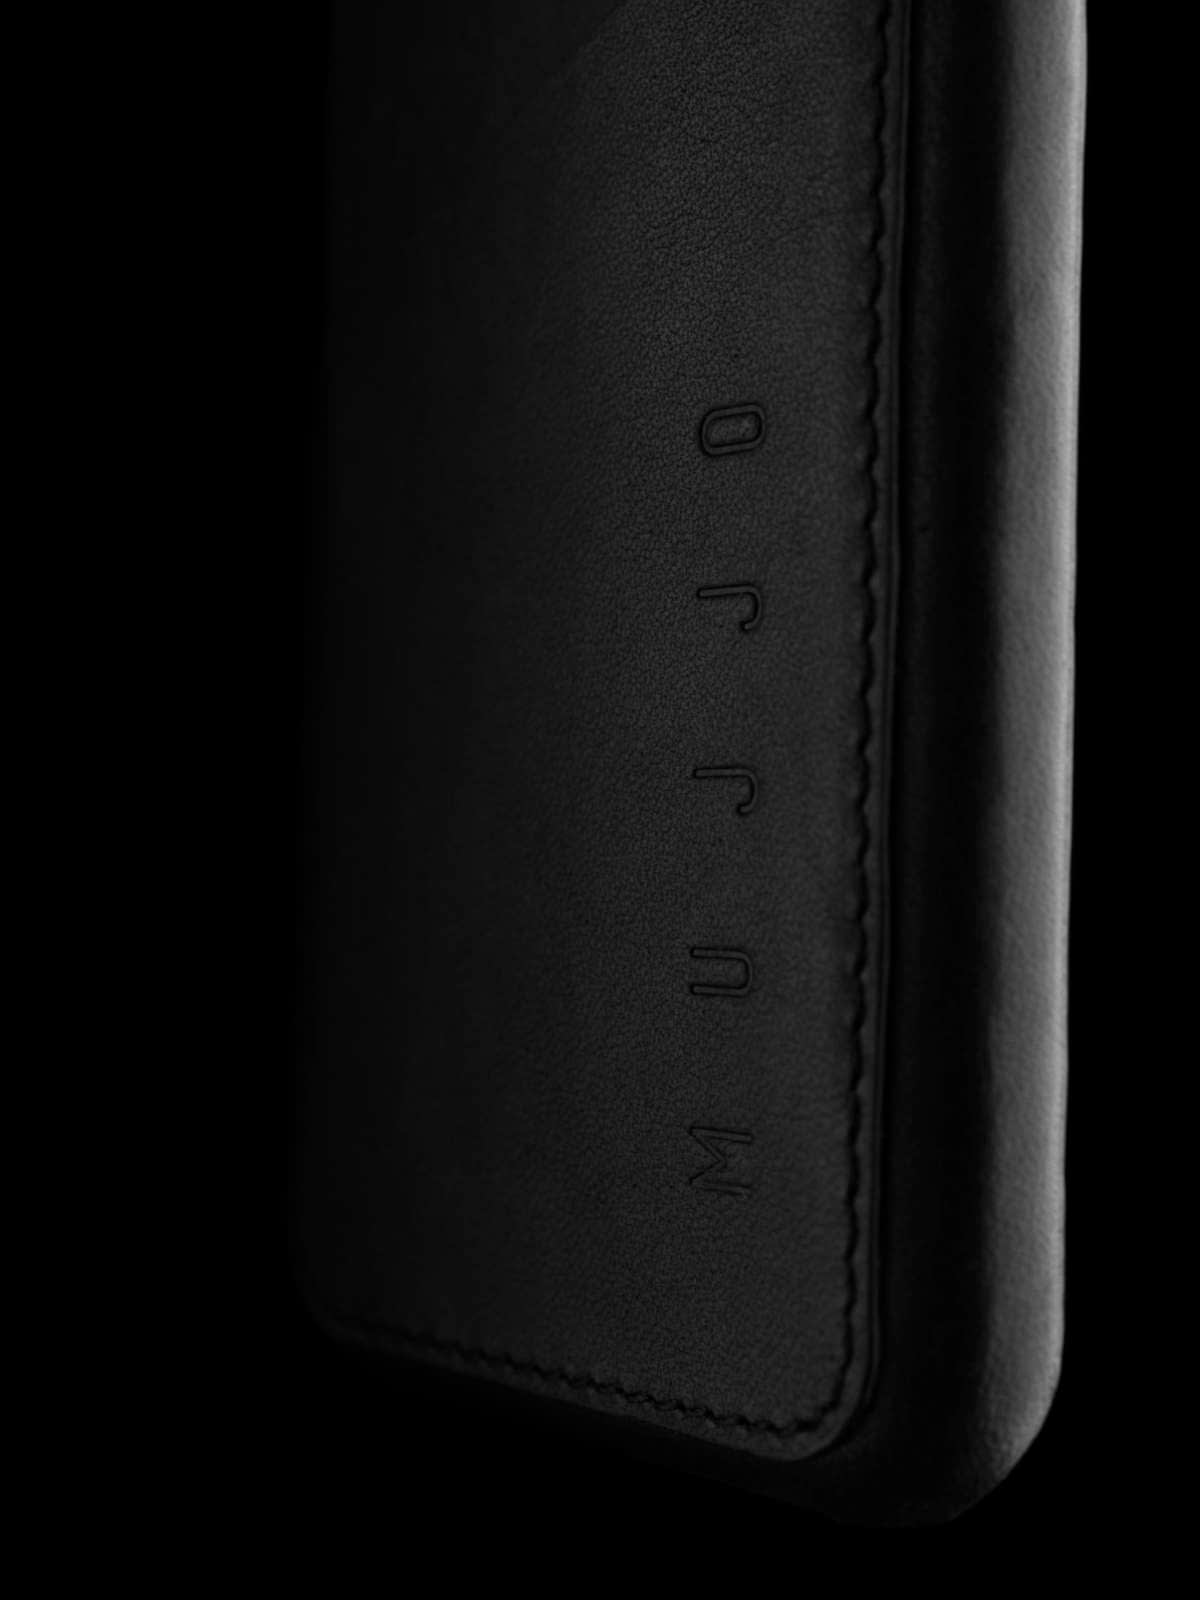 Leather Wallet Case for iPhone 6 Black Lifestyle 007